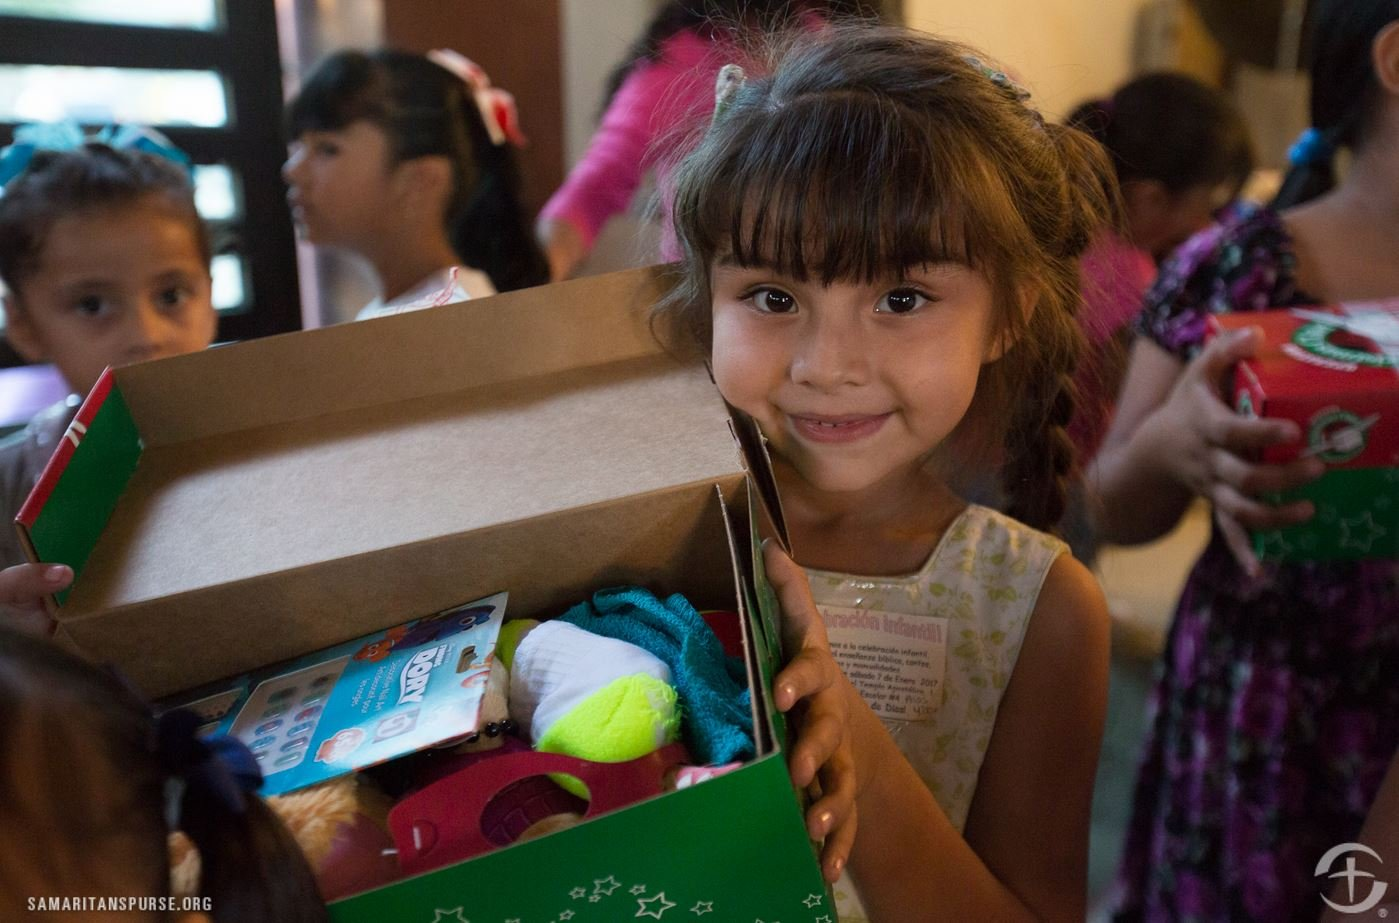 Delivering shoe boxes in Mexico (Source: Samaritan's Purse)